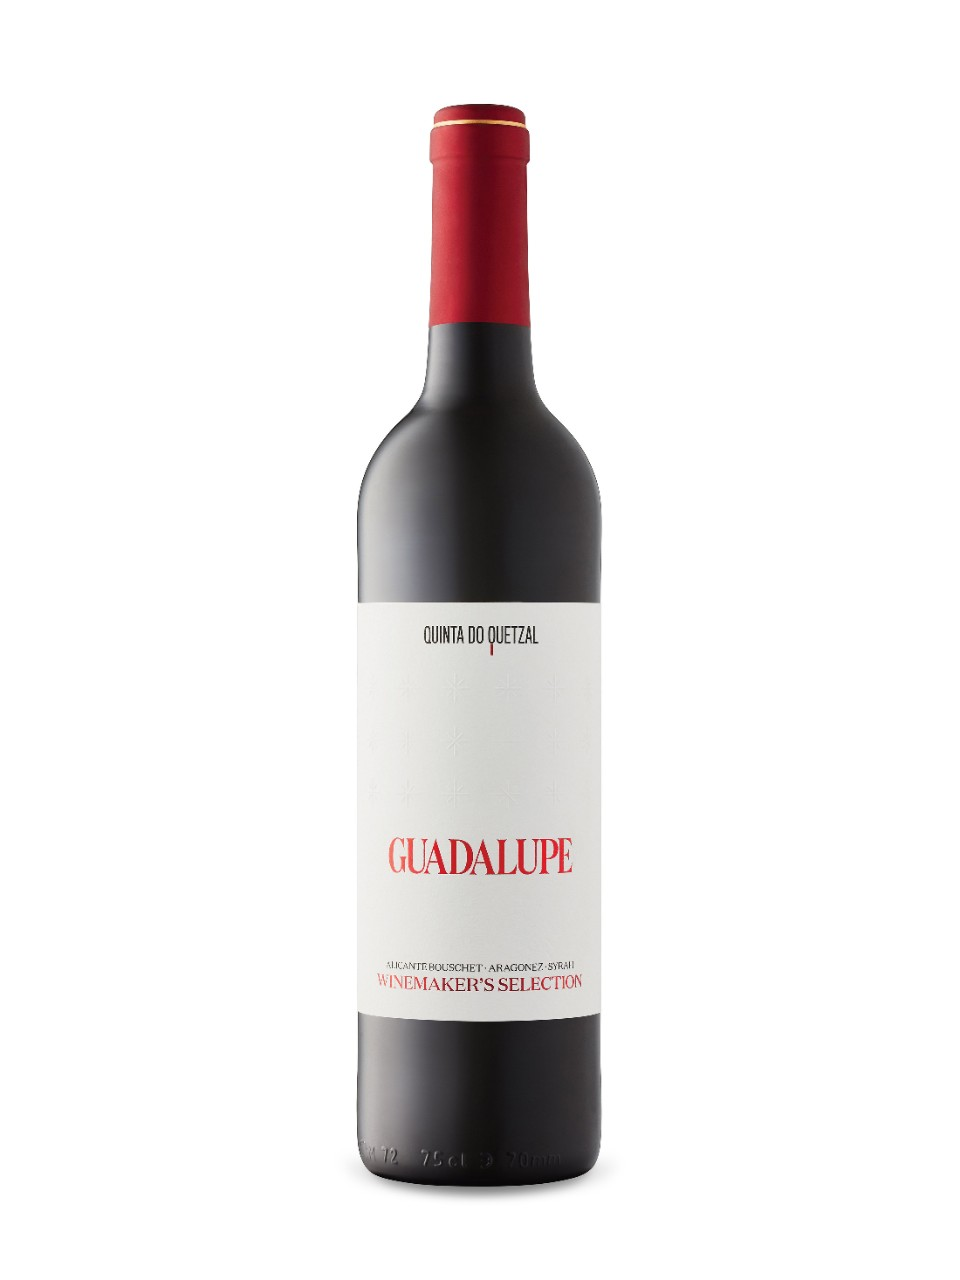 Quinta do Quetzal Guadalupe Winemaker's Selection Red 2015